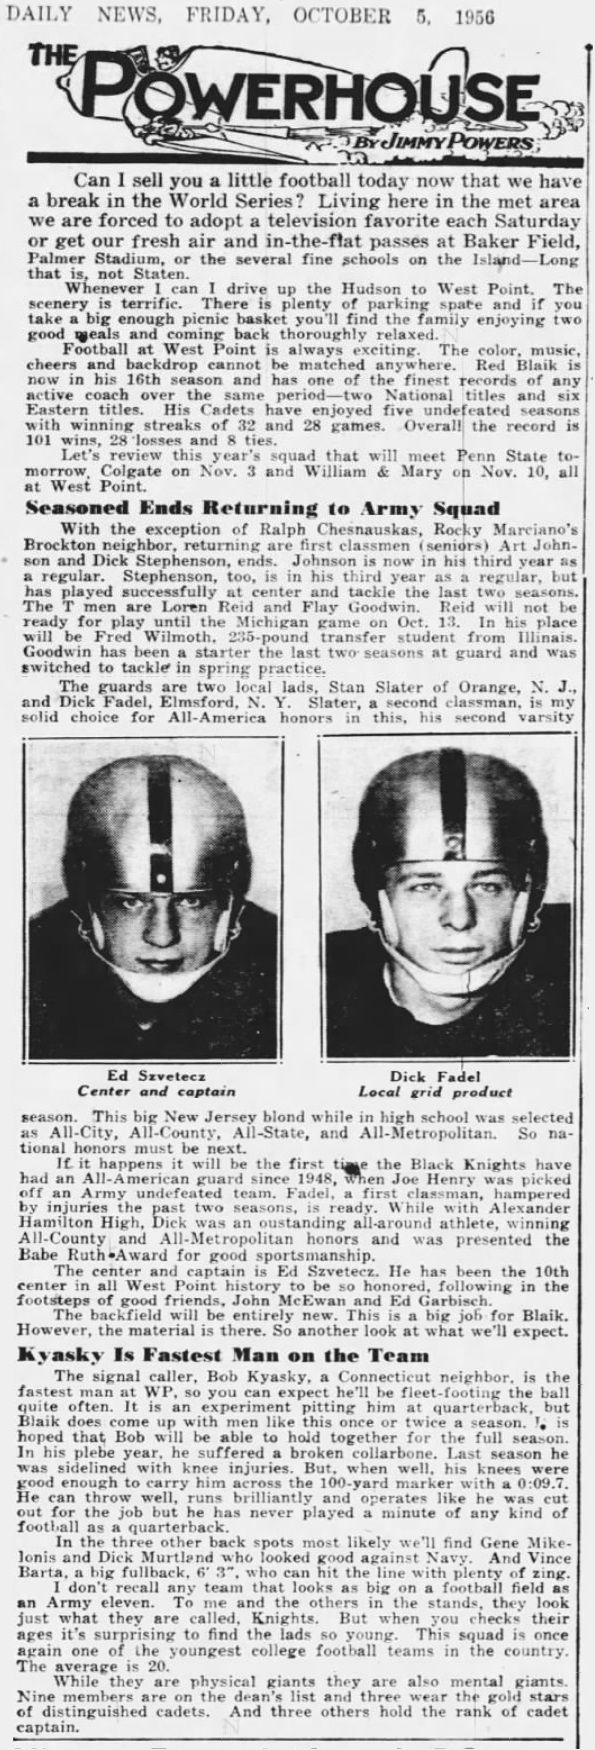 ArmyFB_1956_season-preview_Szvetecz-Fadal_Kyasky_DailyNews_Oct51956